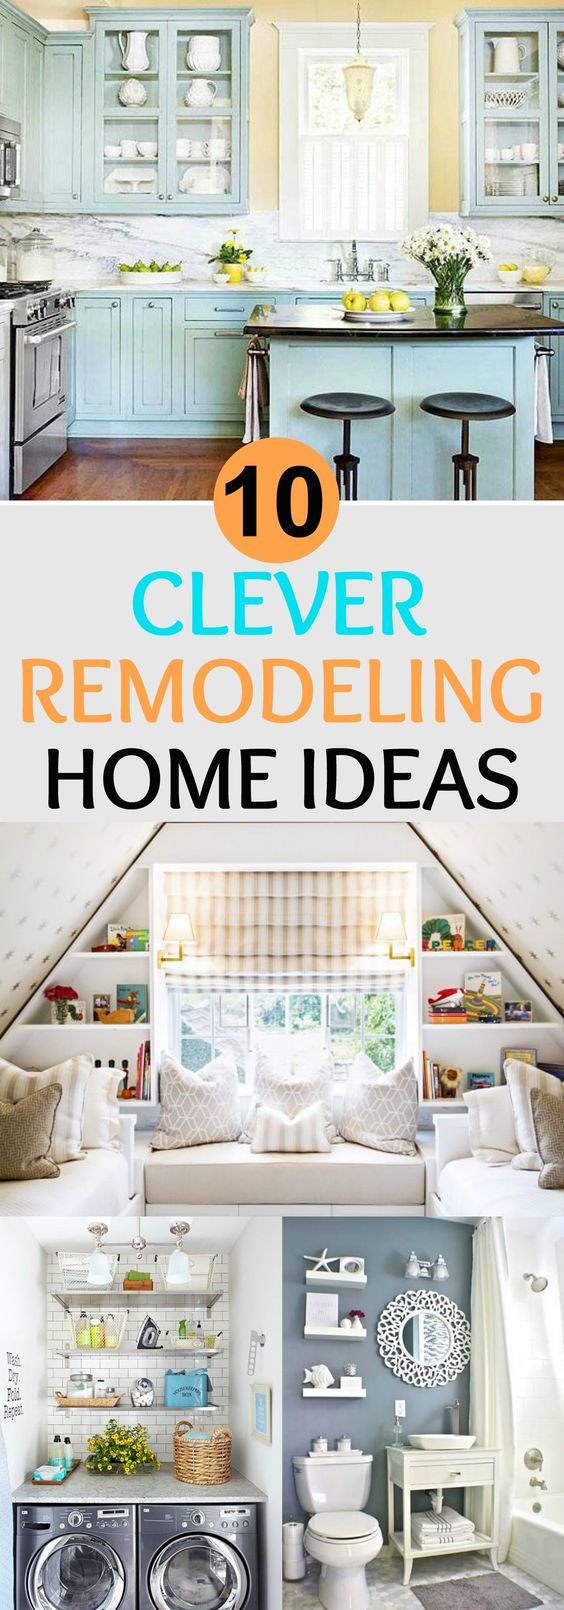 10 Clever Remodeling Home Ideas. Are you thinking redesigning your home? Here I share some awesome and beautiful ideas for renovating your home.: